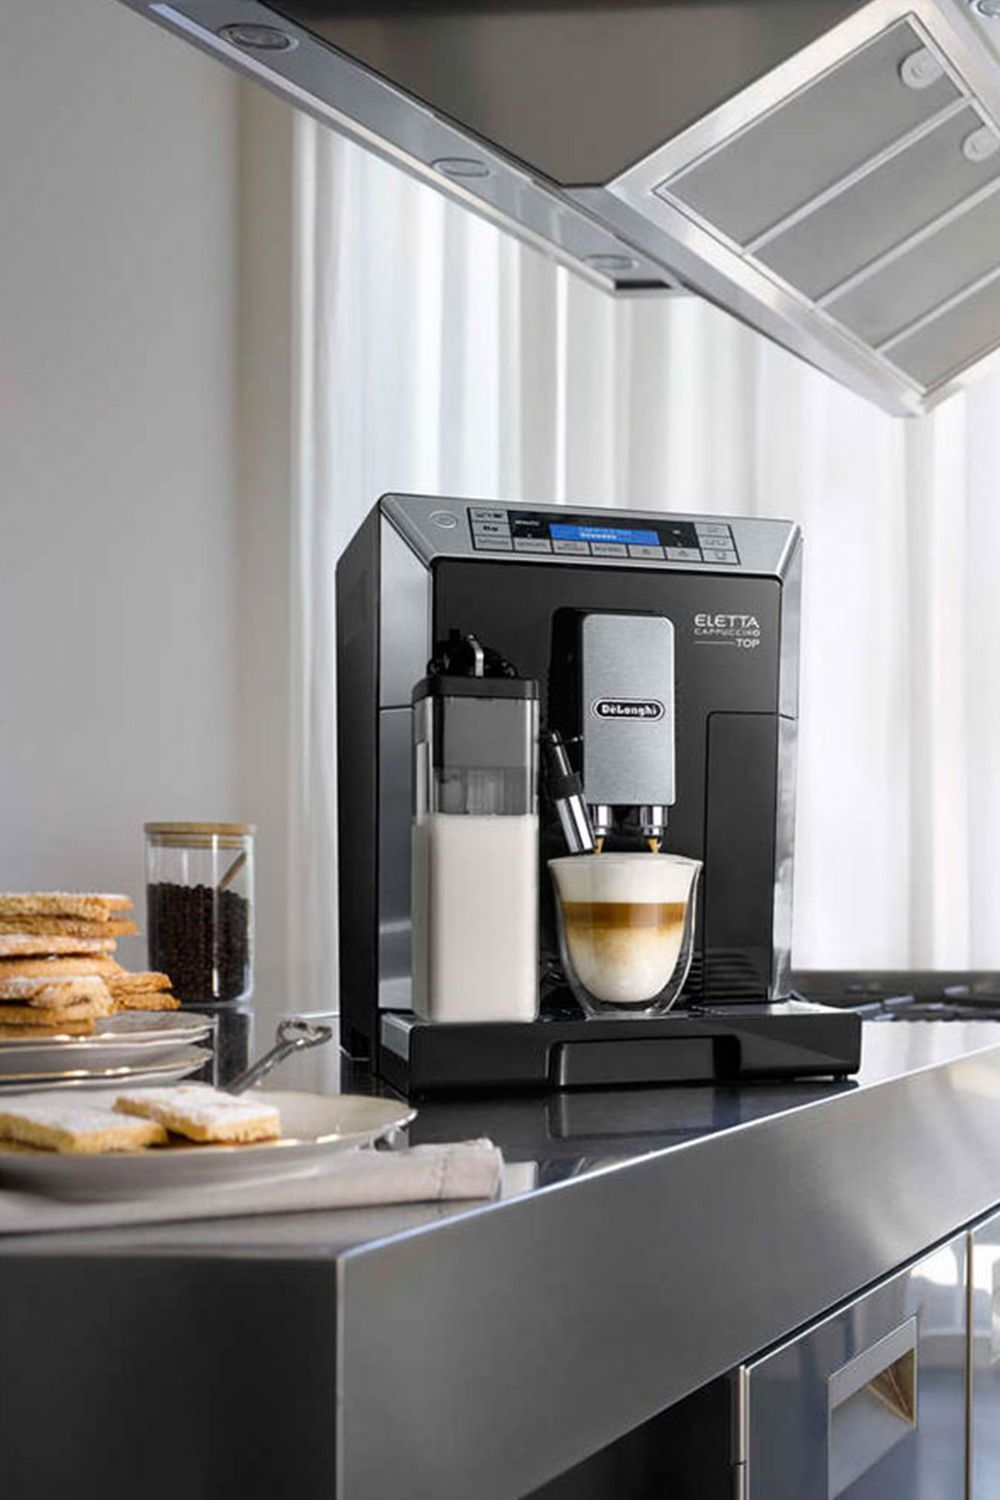 How To Make Your Own Espresso (With images) Home